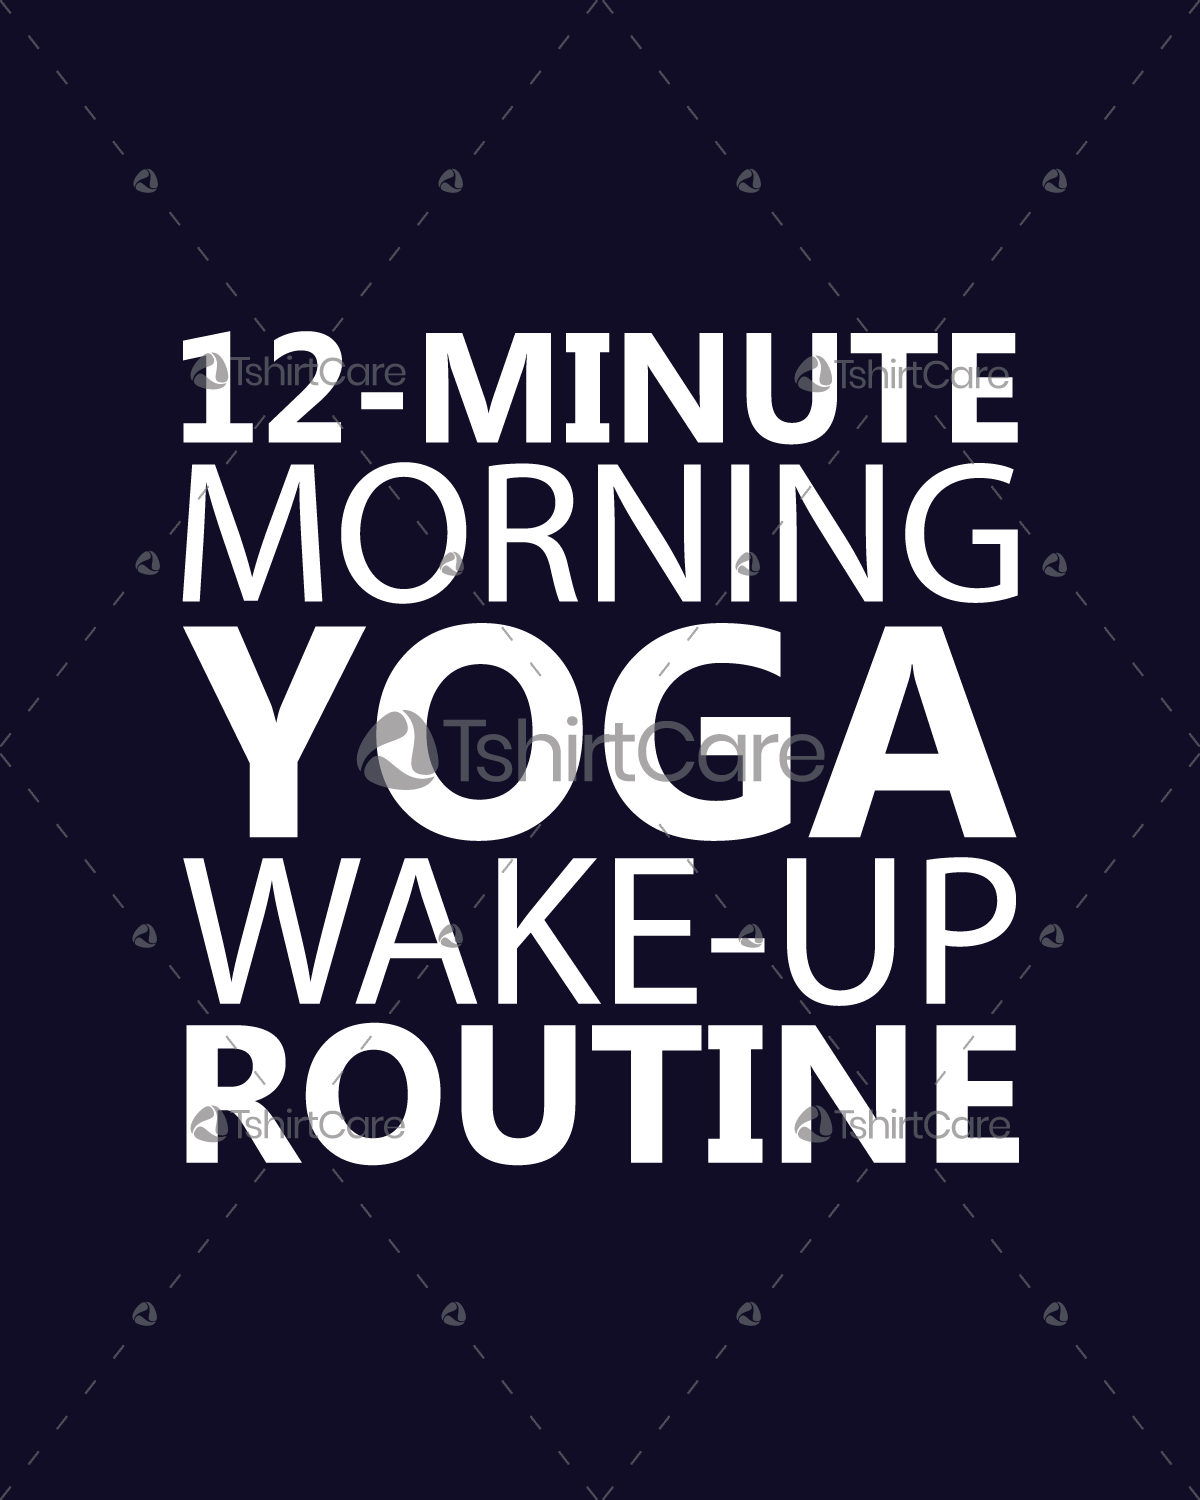 12 Minute Morning Yoga Wake Up Routine